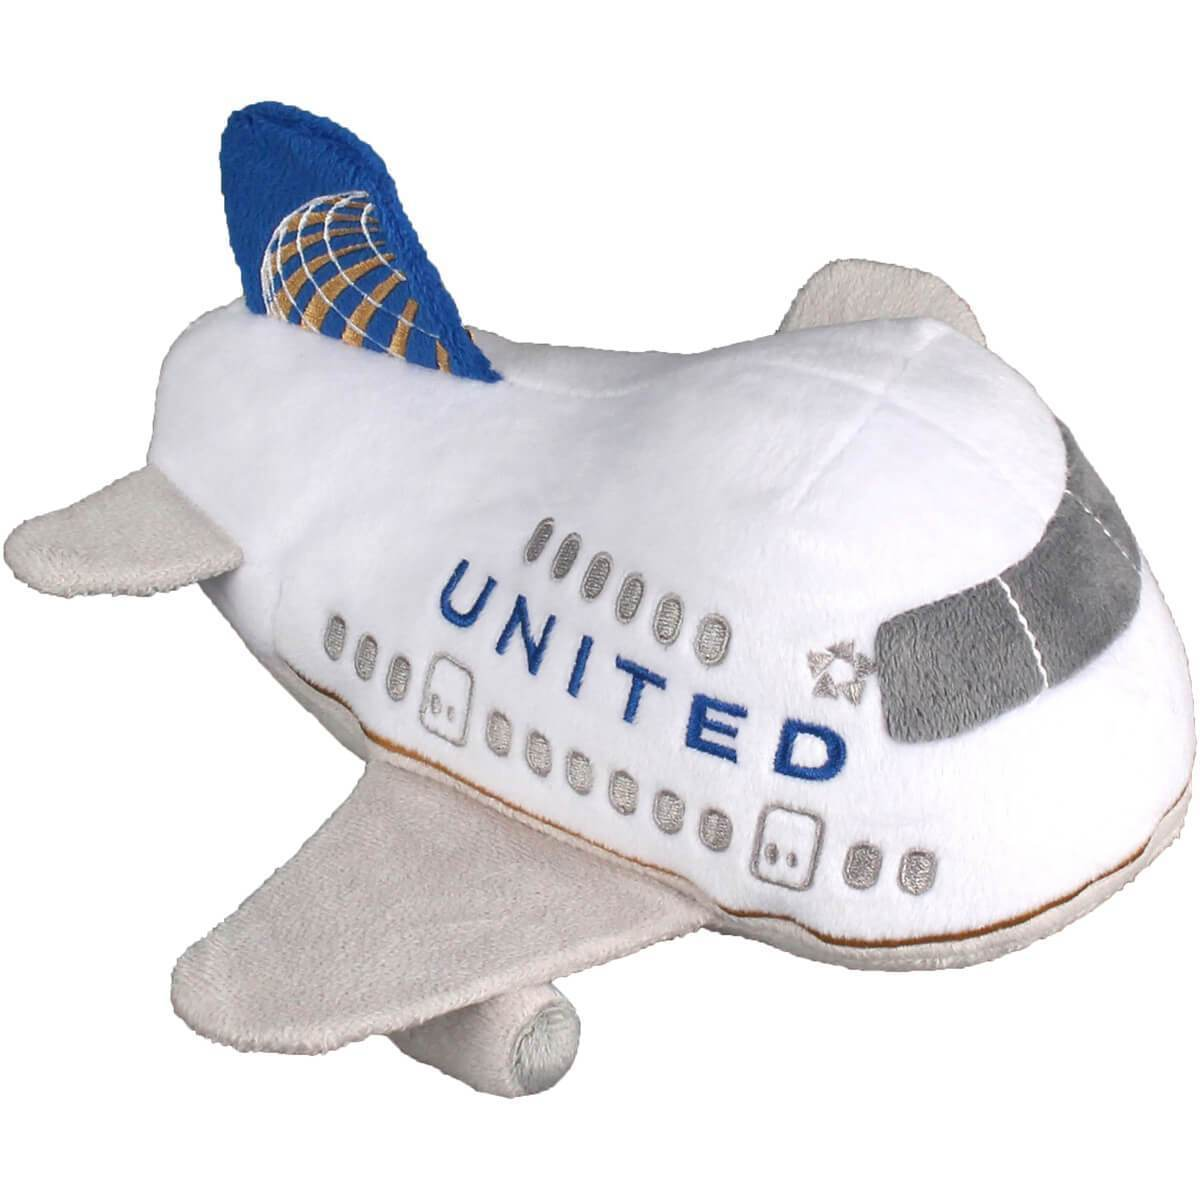 United Airlines Plush Toy w/Sound